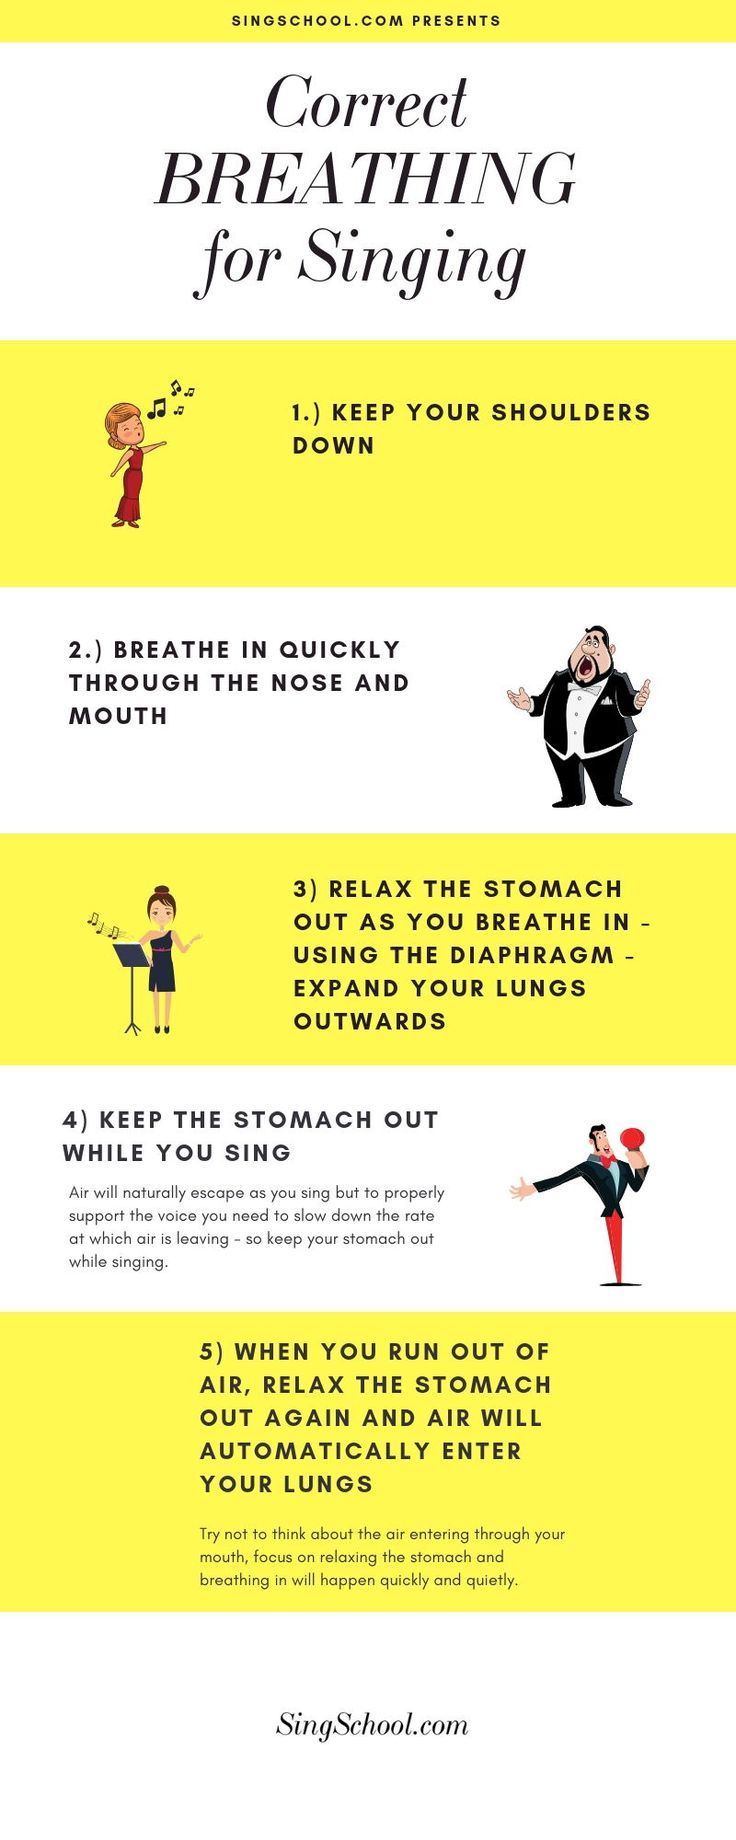 How to sing for beginners. Breathing properly will help you protect your voice as well as sing better. Here are tips to fill your lower lungs with air, enabling your abdomen and diaphragm to do the work. #singing #infographic